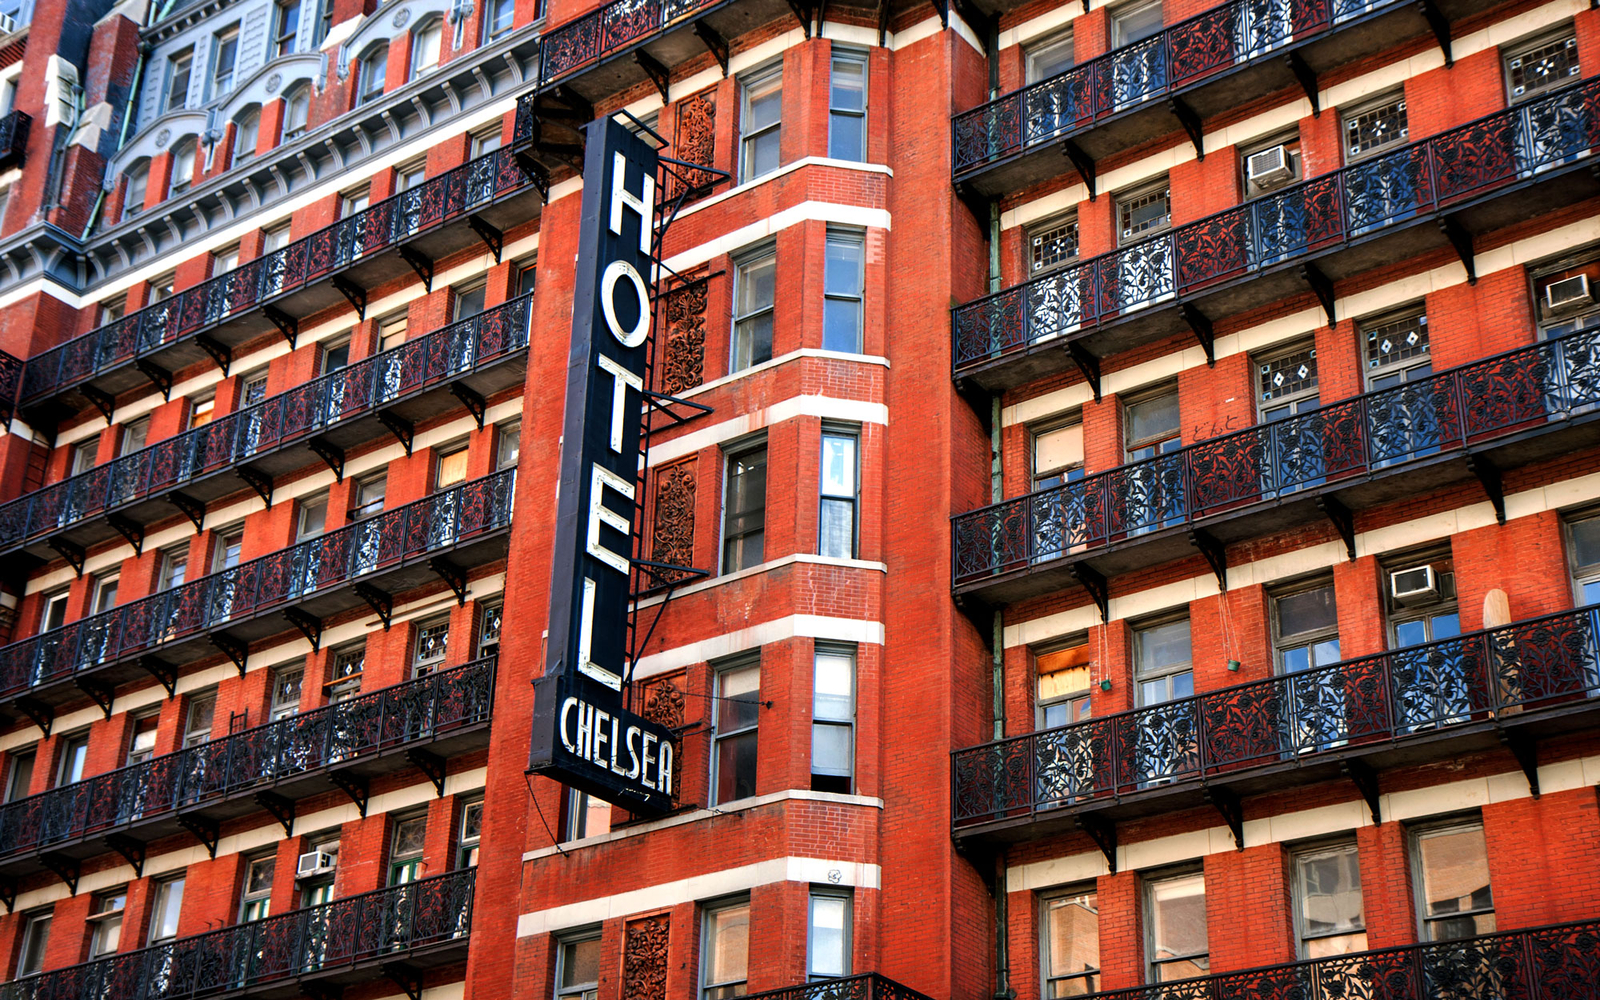 Hotel Chelsea, New York City